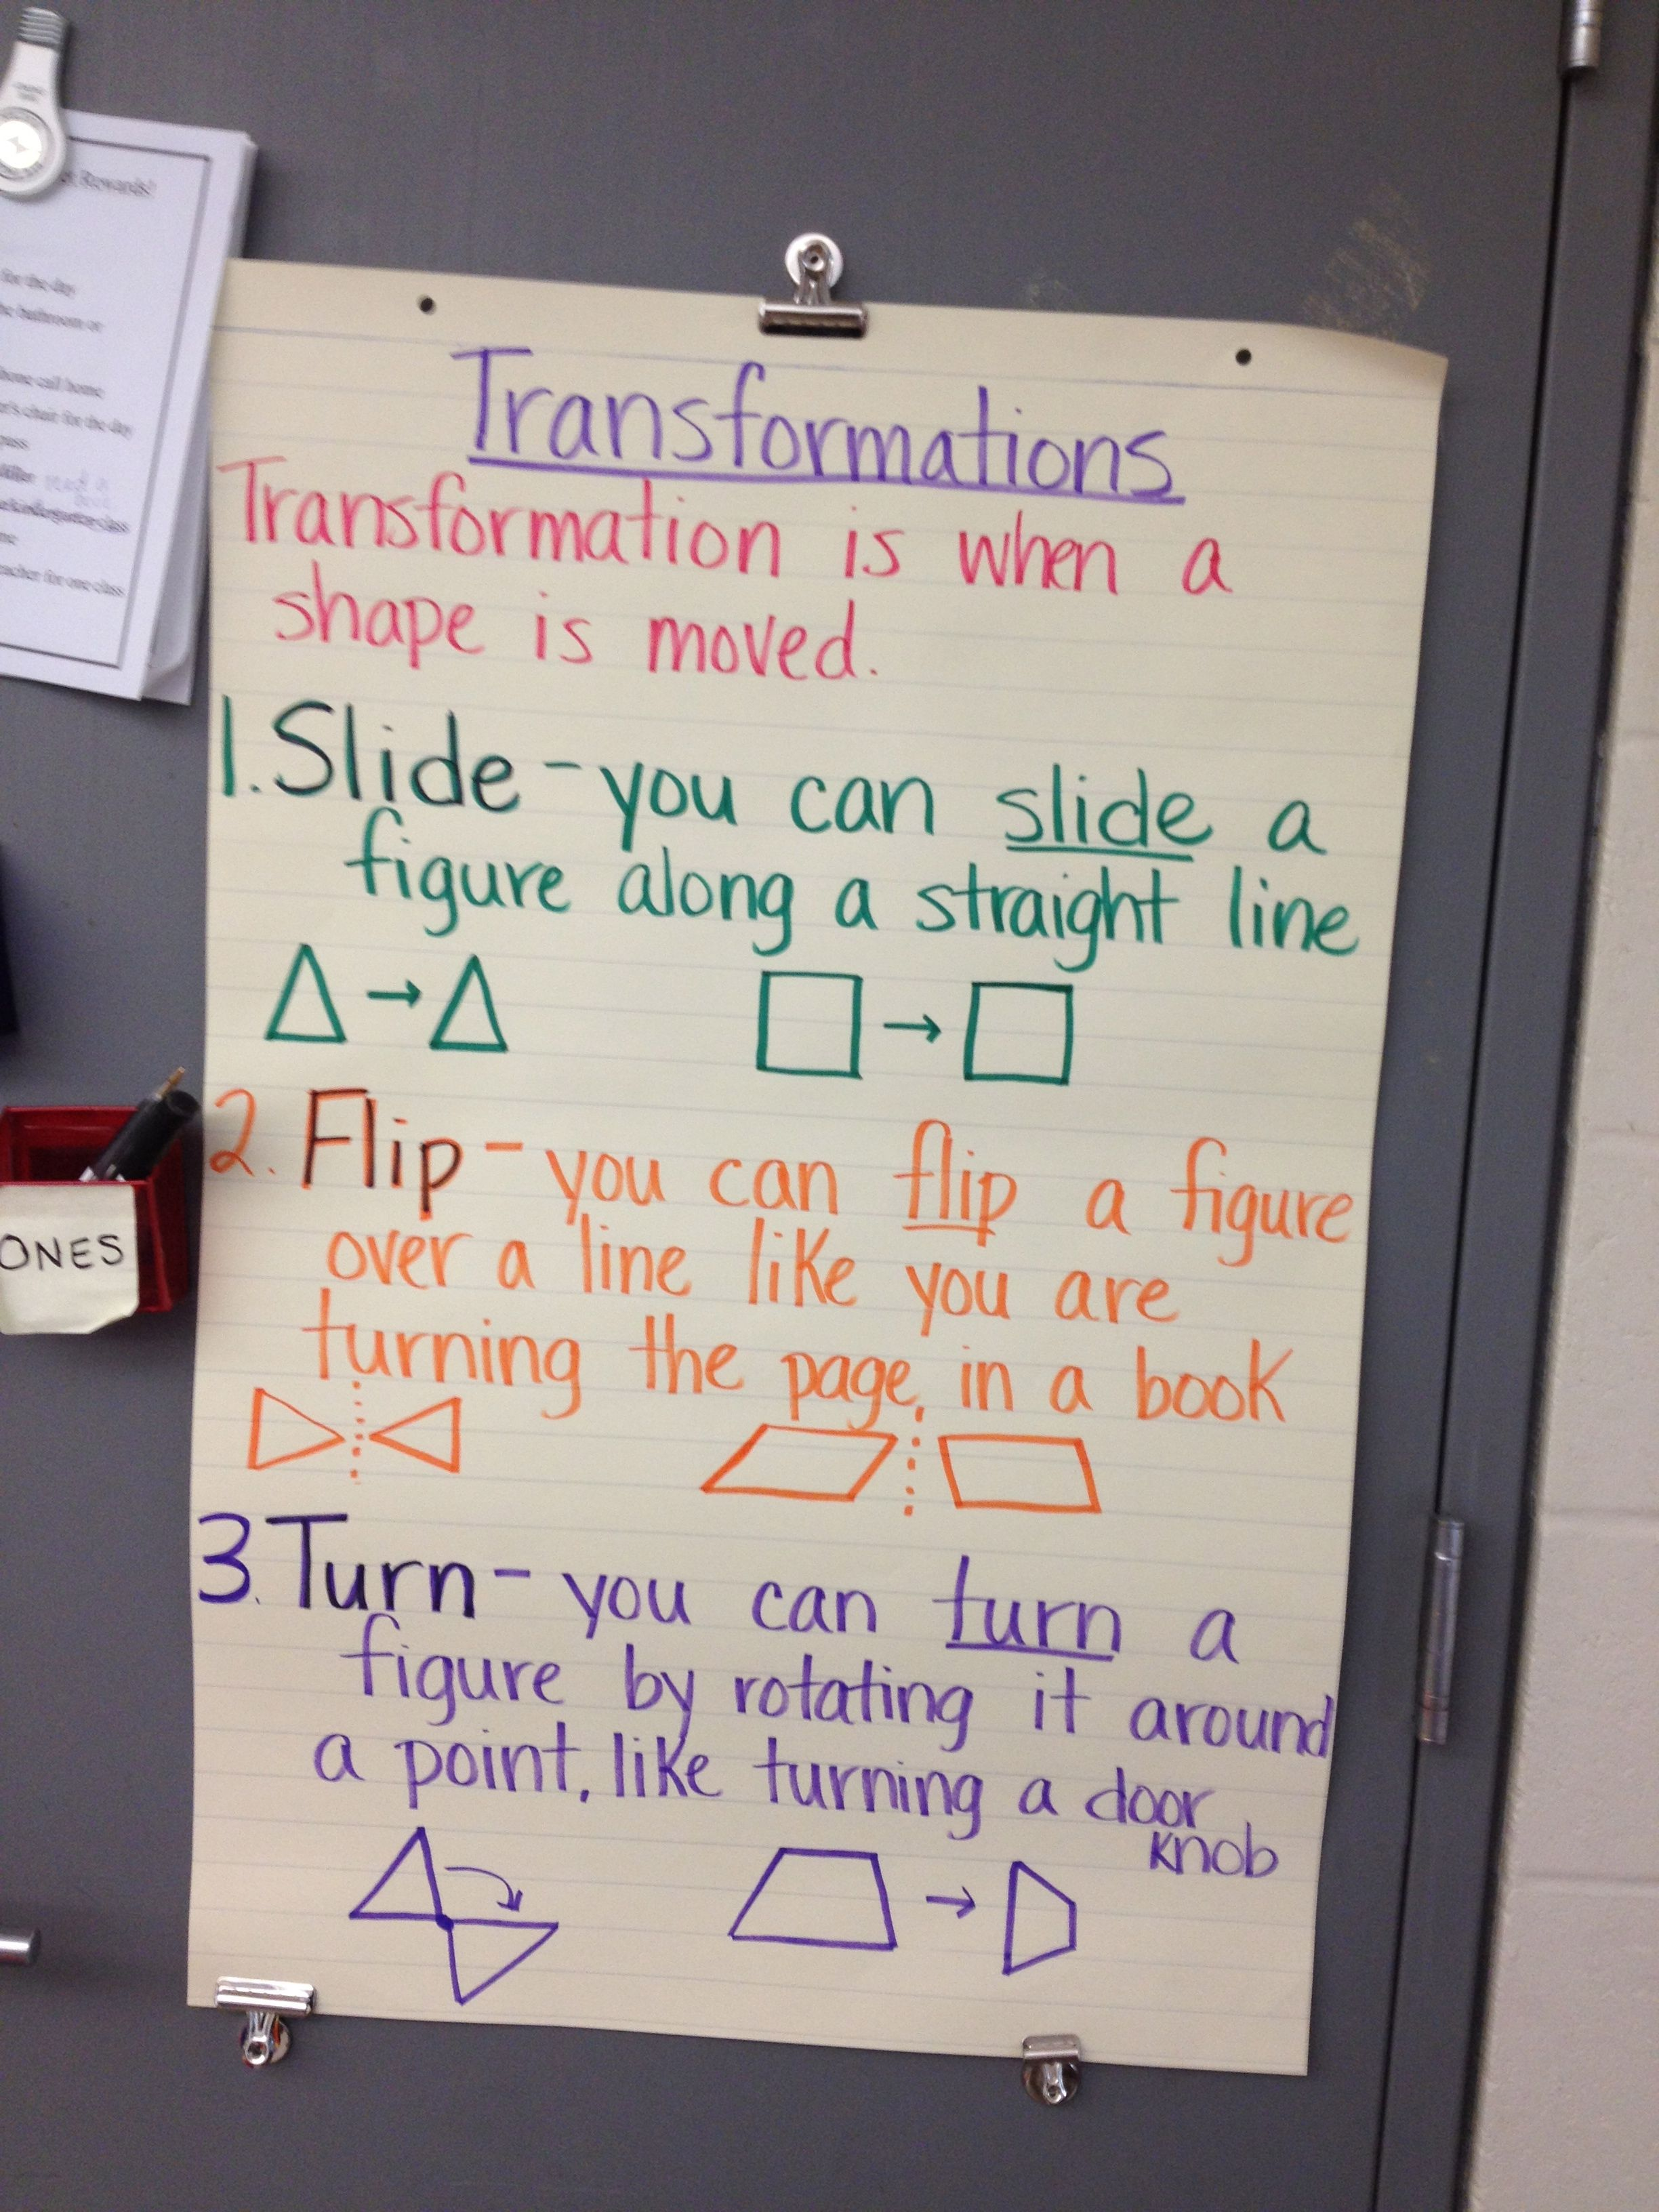 Pin By Erica Miller On Anchor Charts Translations Math Transformations Math Math Worksheets